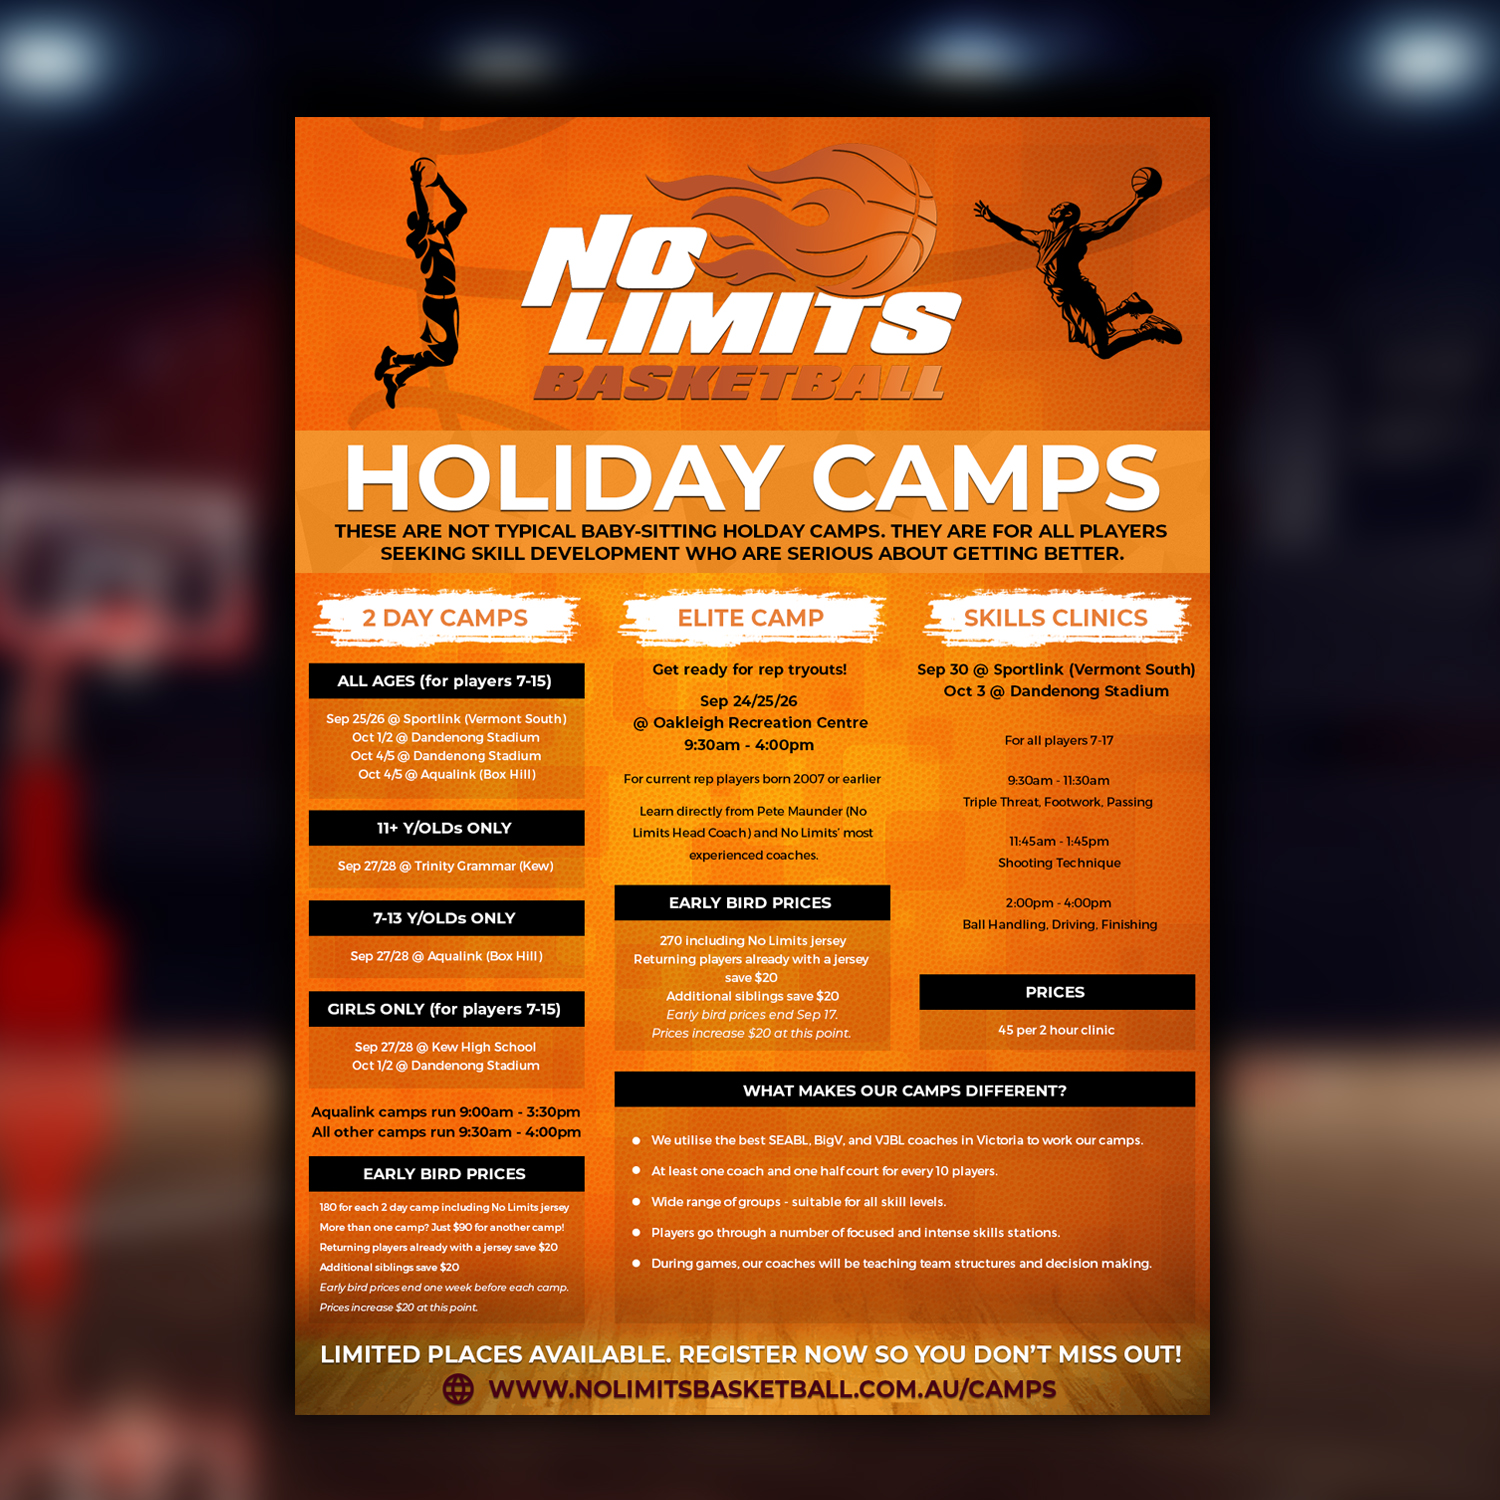 Modern, Professional Flyer Design for No Limits Basketball